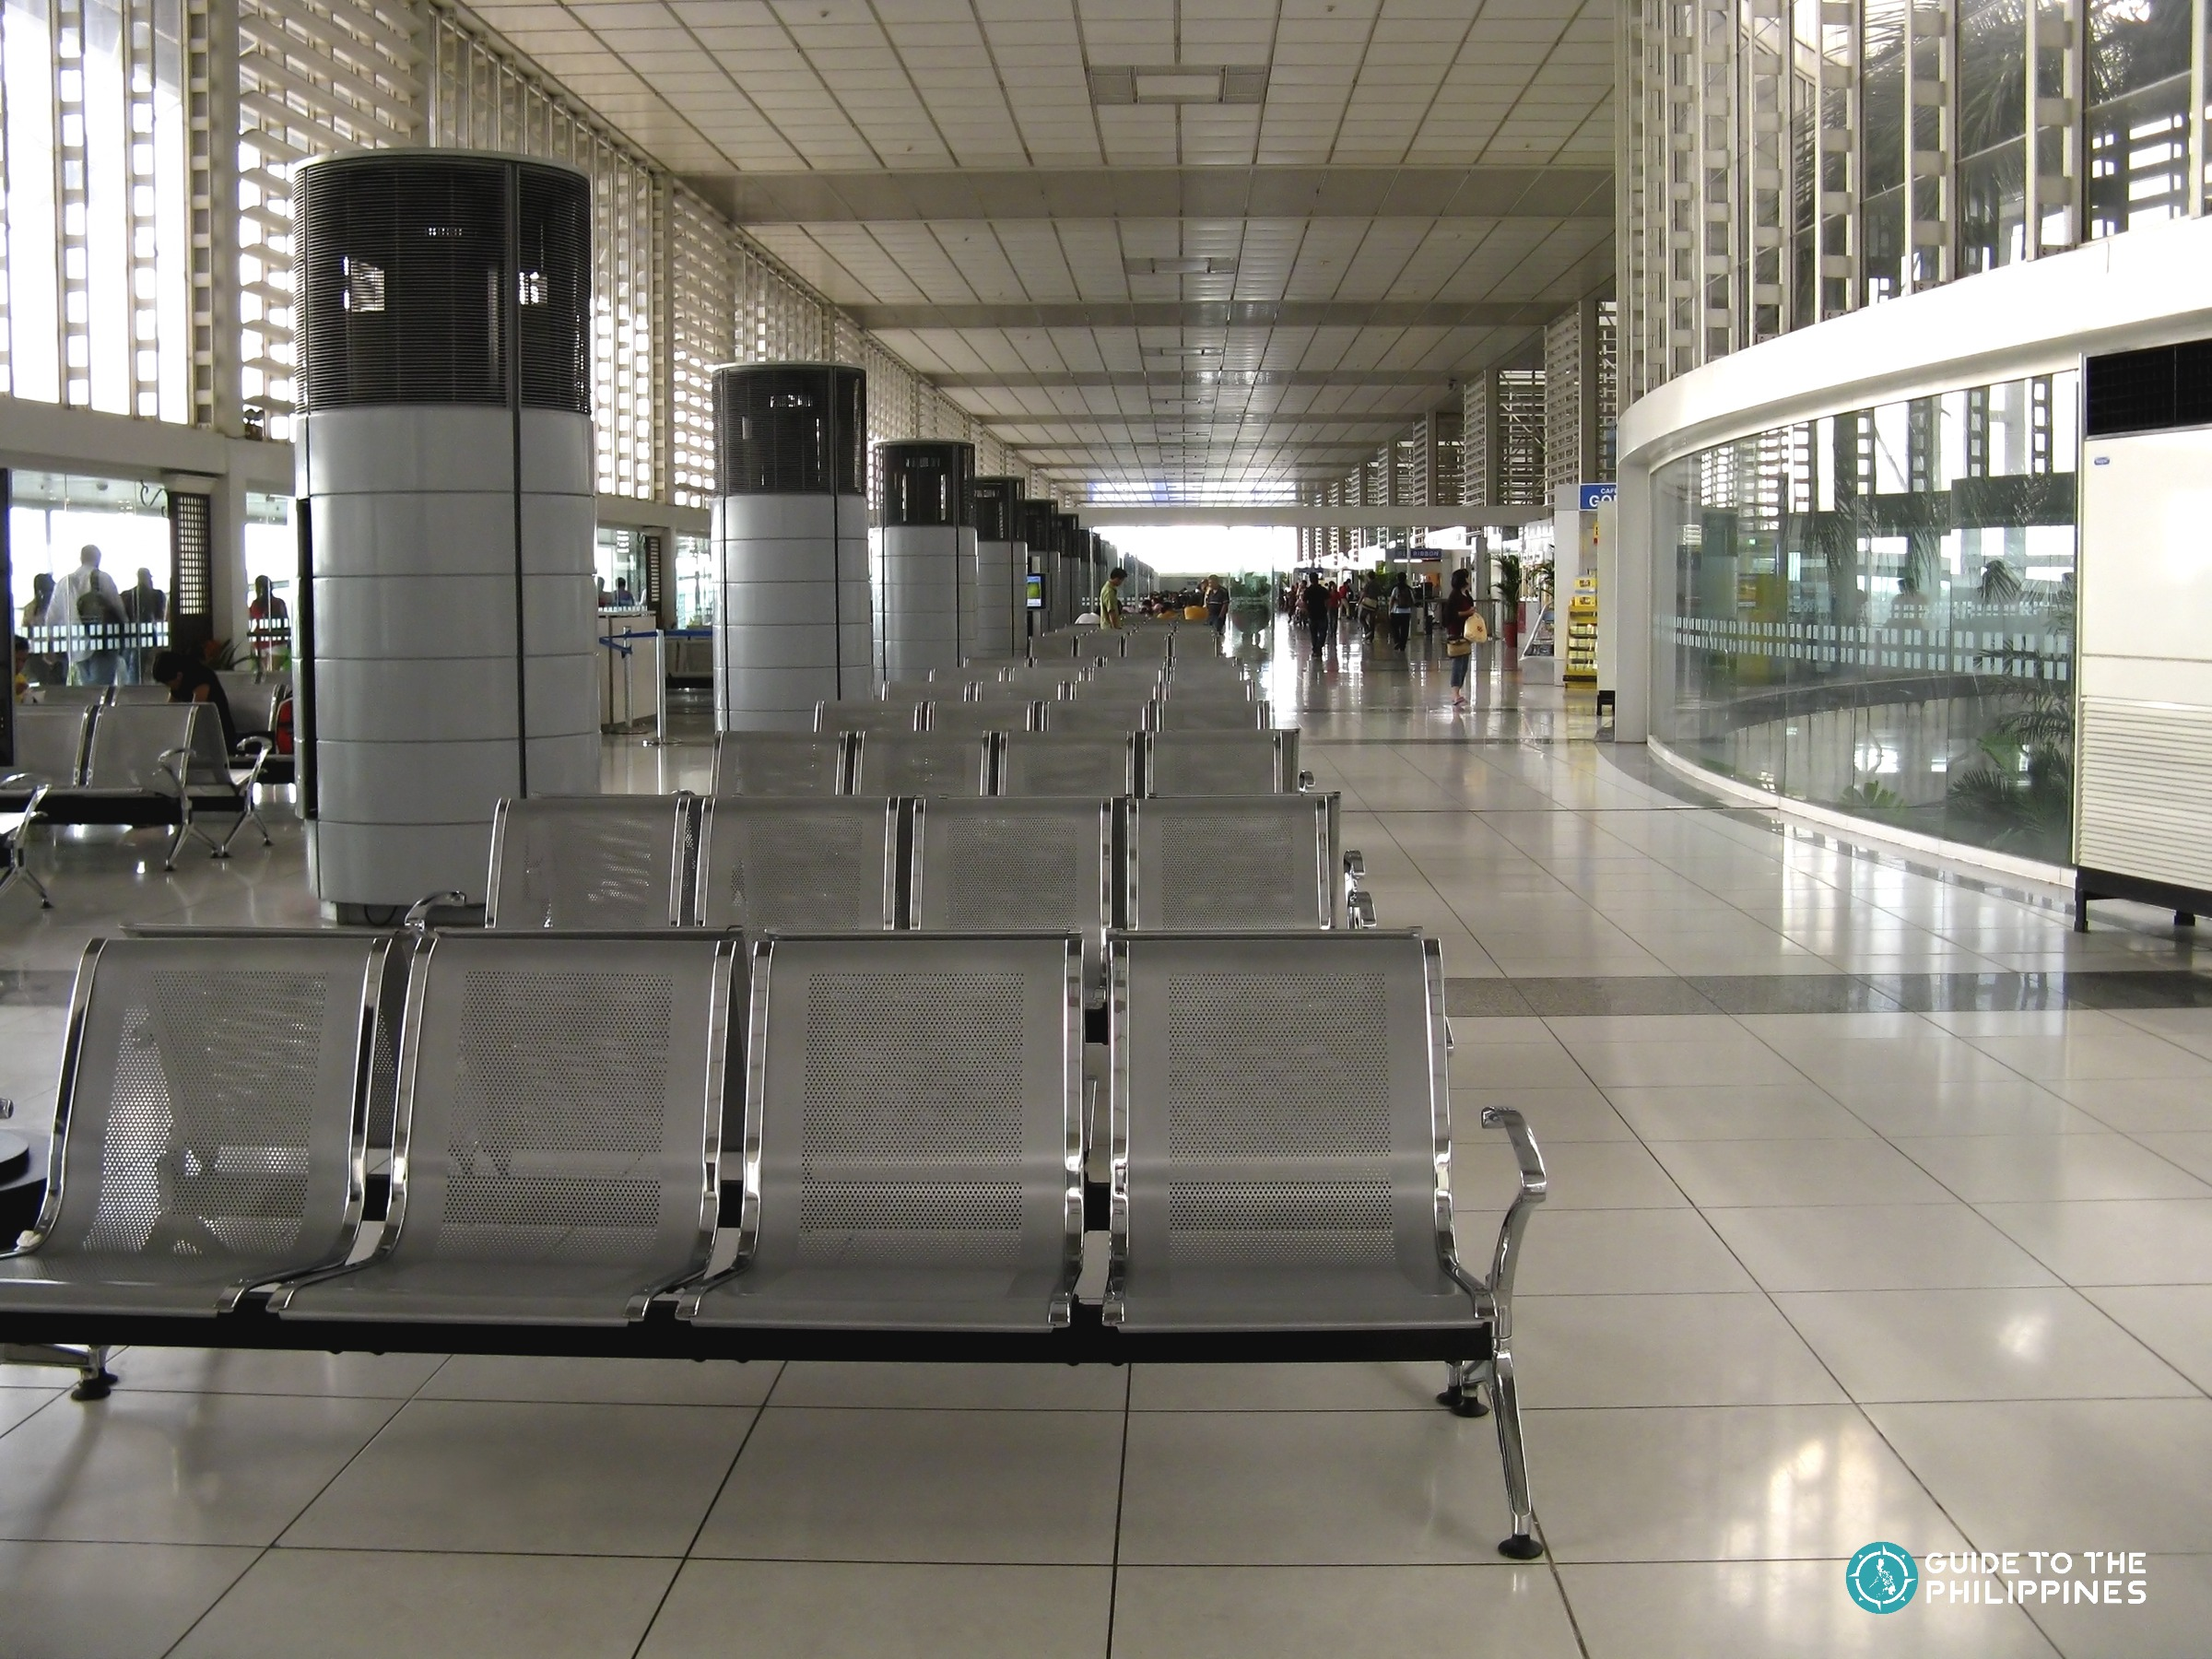 Guide to Manila Airports: Terminals, Airlines, Getting Around, Travel Tips